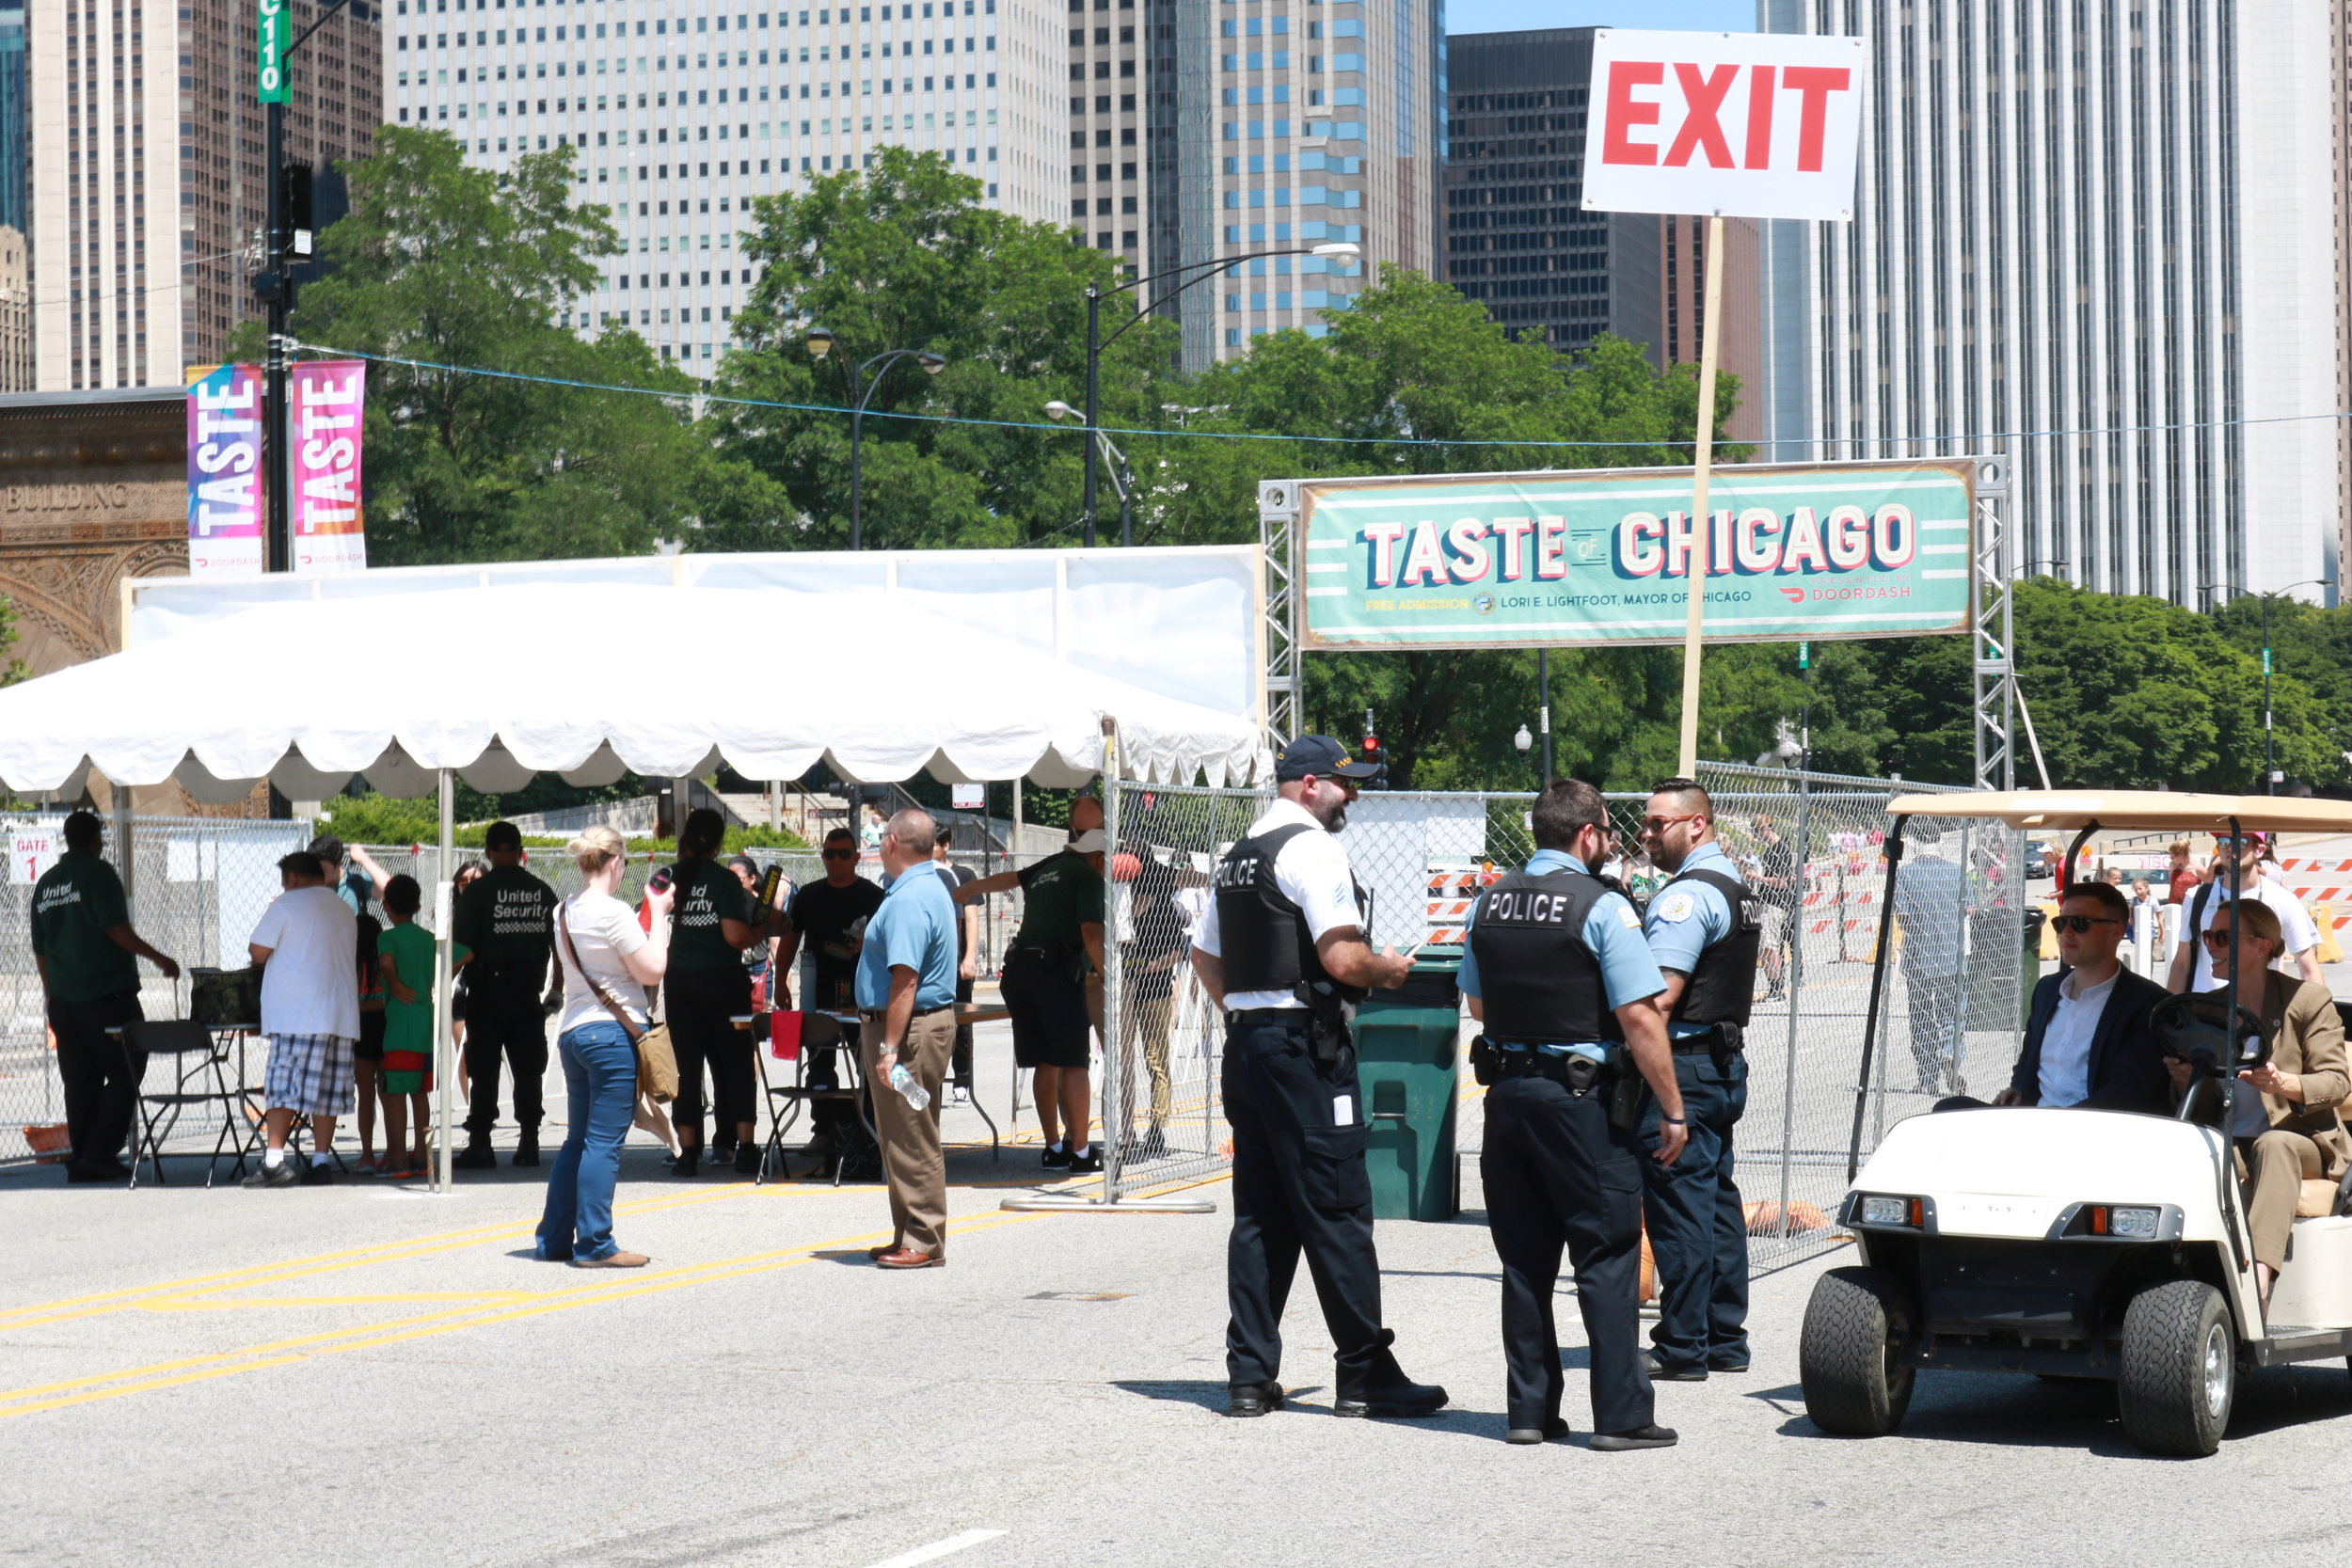 As visitors of the 2019 Taste of Chicago left the venue, people passed the two different security forces to ensure safety. Chicago Police patrolled the event while United Security conducted searches at the baggage check posted at the Taste.